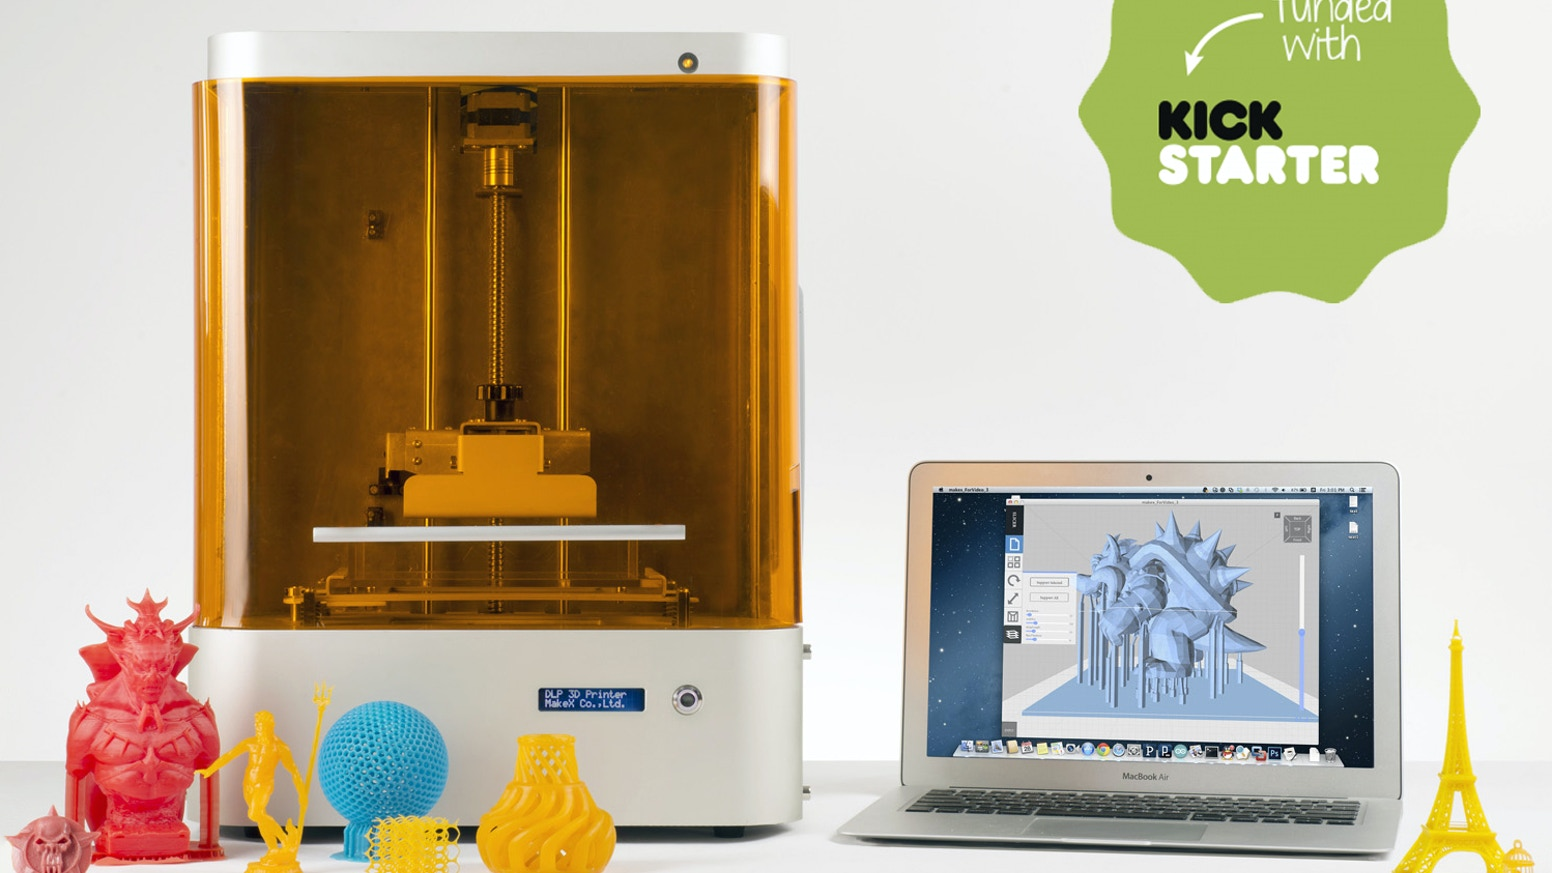 M-One: An opensource, professional desktop DLP 3D printer by MakeX